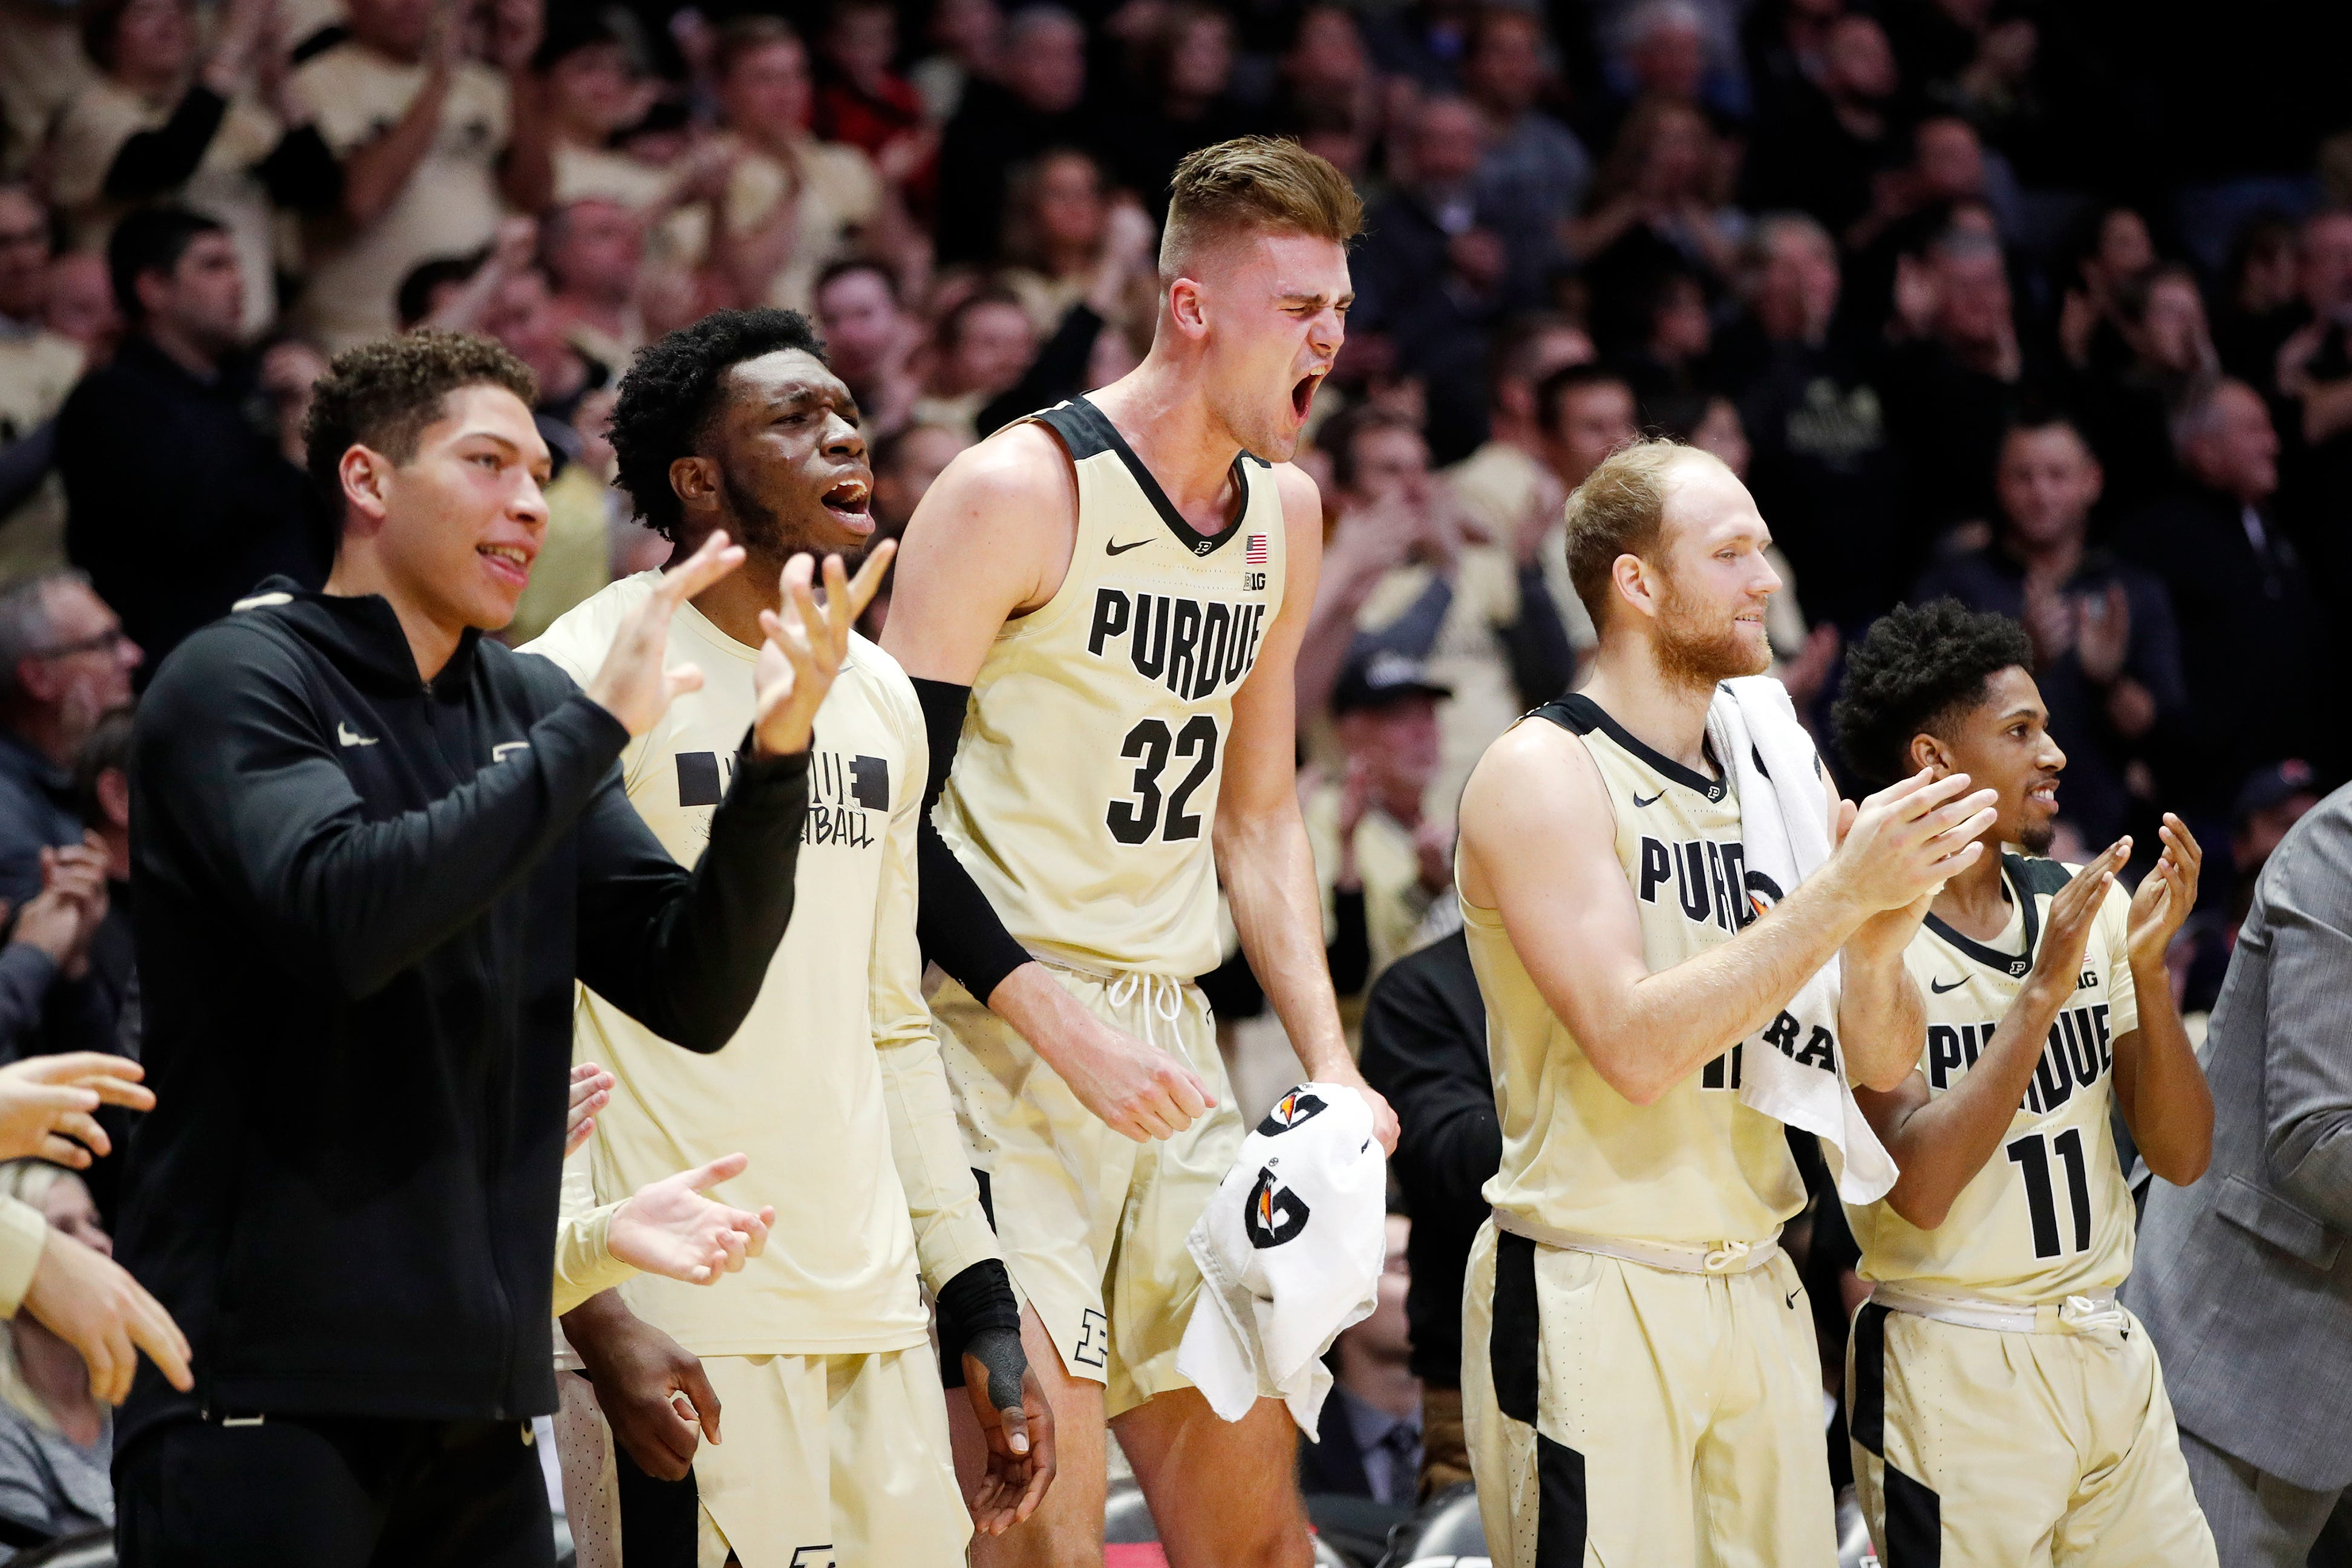 Purdue upsets defending national champion and No. 2 Virginia in blowout